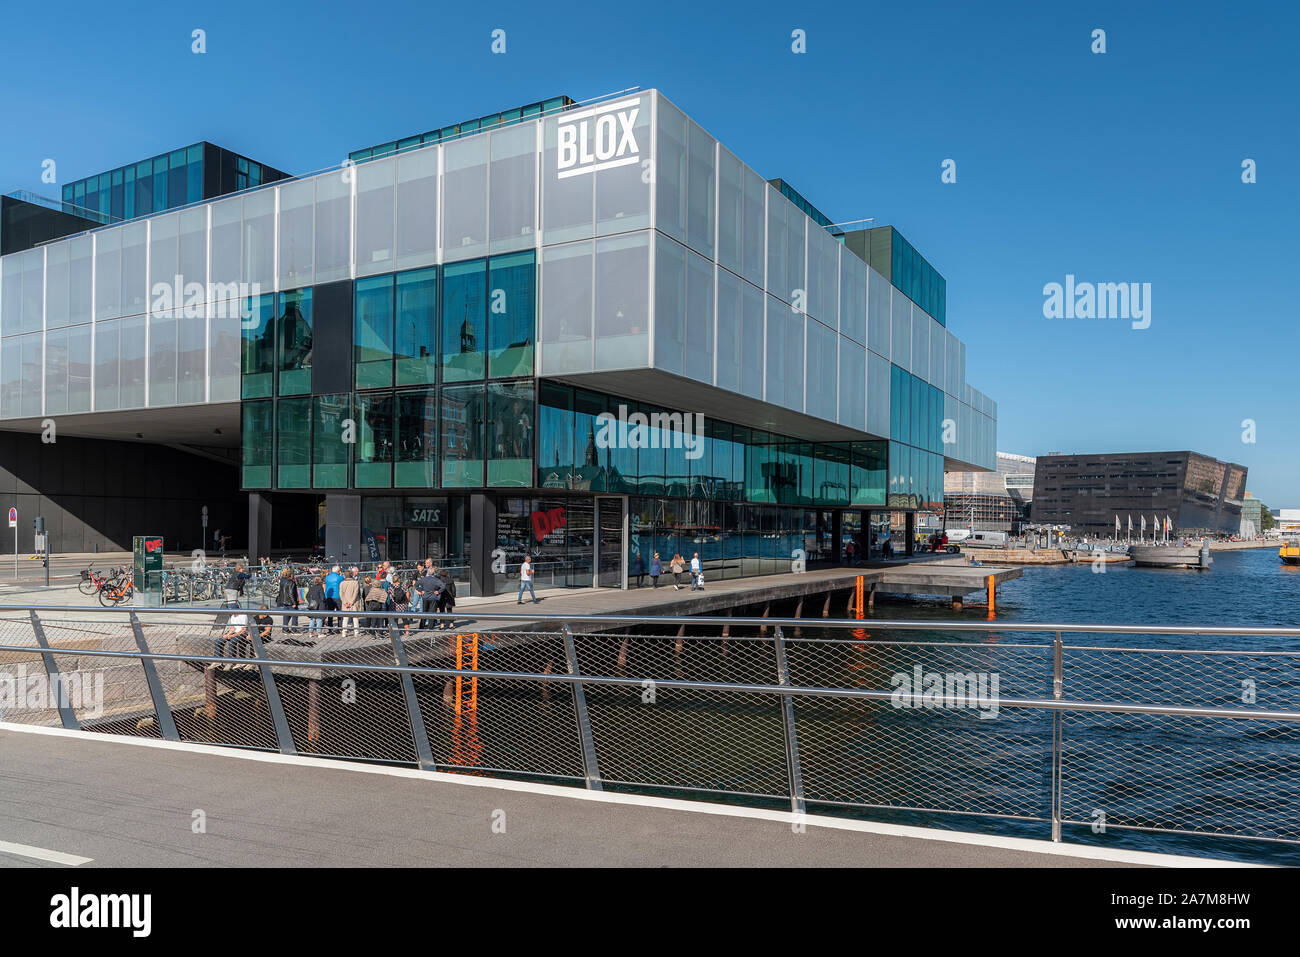 COPENHAGEN, DENMARK - SEPTEMBER 21, 2019: Located on the Copenhagen Harbour front, BLOX is part of the city's cultural circuit of venues that have a r Stock Photo